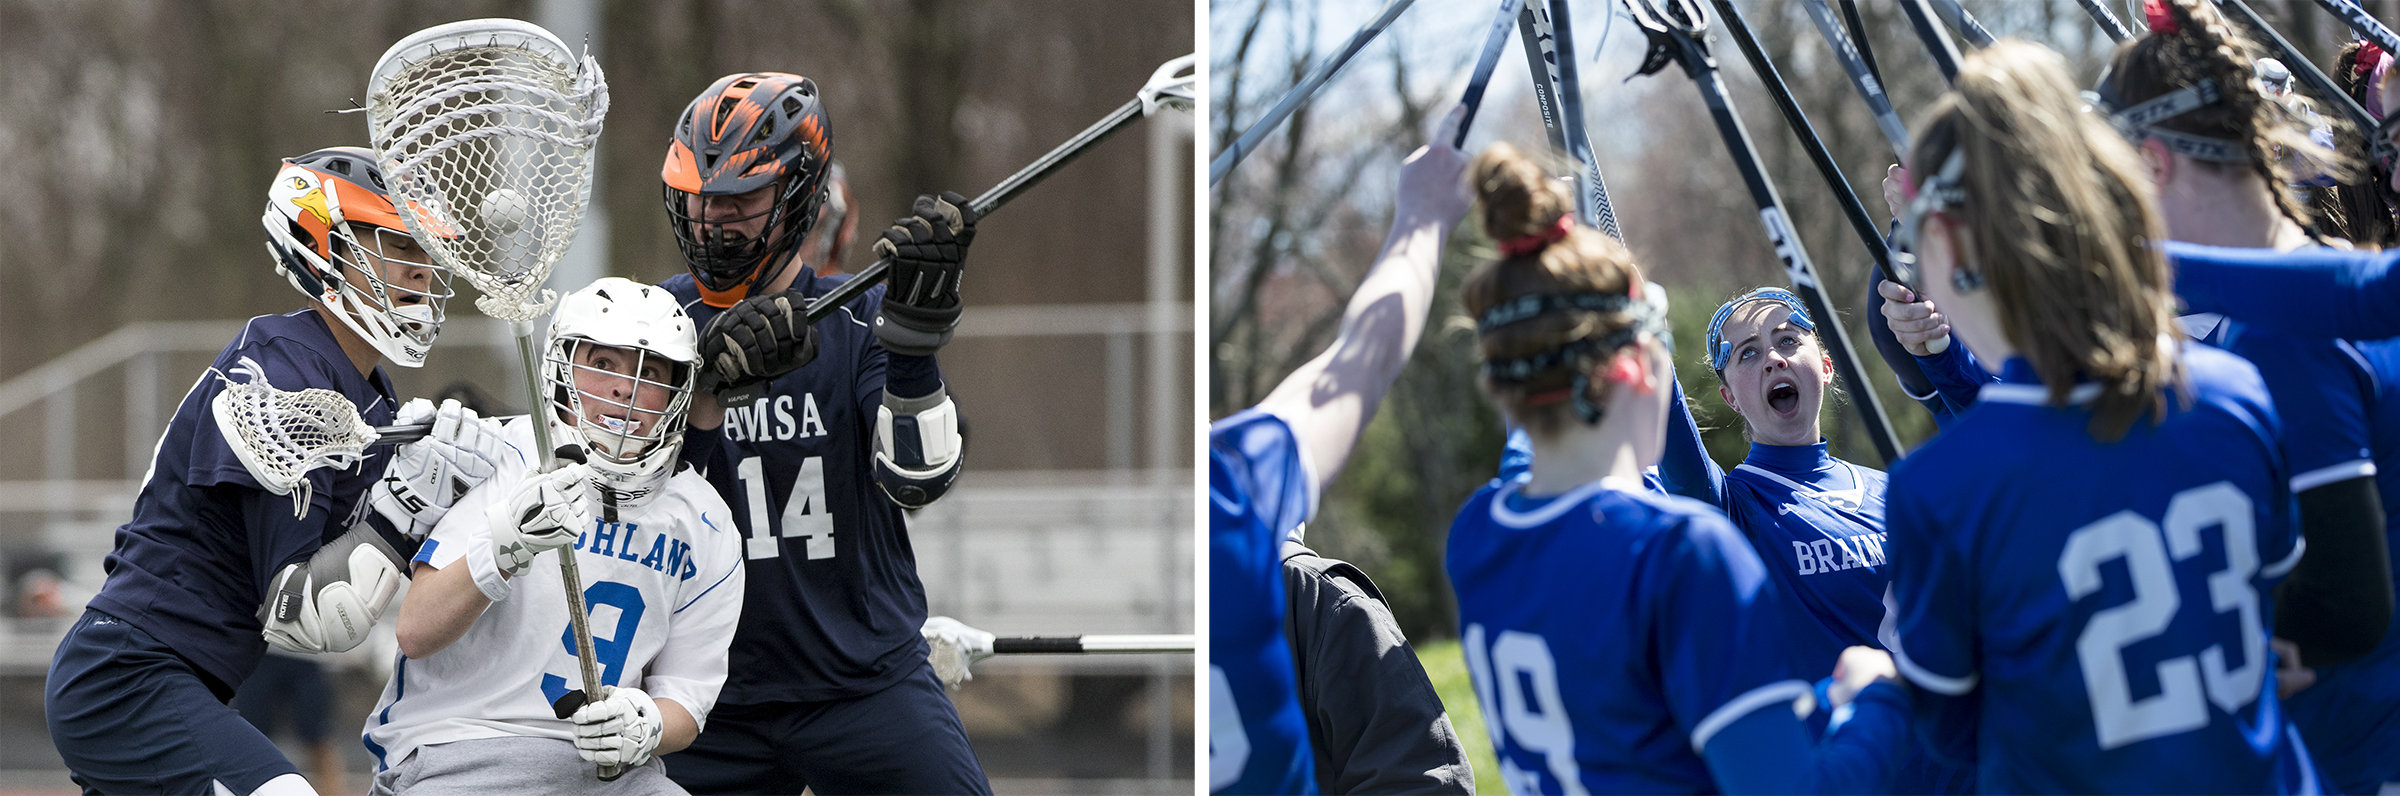 (Left) Ashland's goalie Marcus Millard, center, fights for control of the ball against against Advanced Math & Science Academy's Nathan Li, left, and Evan Hardy, right, during the game  on April 8, 2019. (Right) Braintree captain Ava Morrissey, center, rallies with her teammates before the game against Lexington on April 16, 2019.